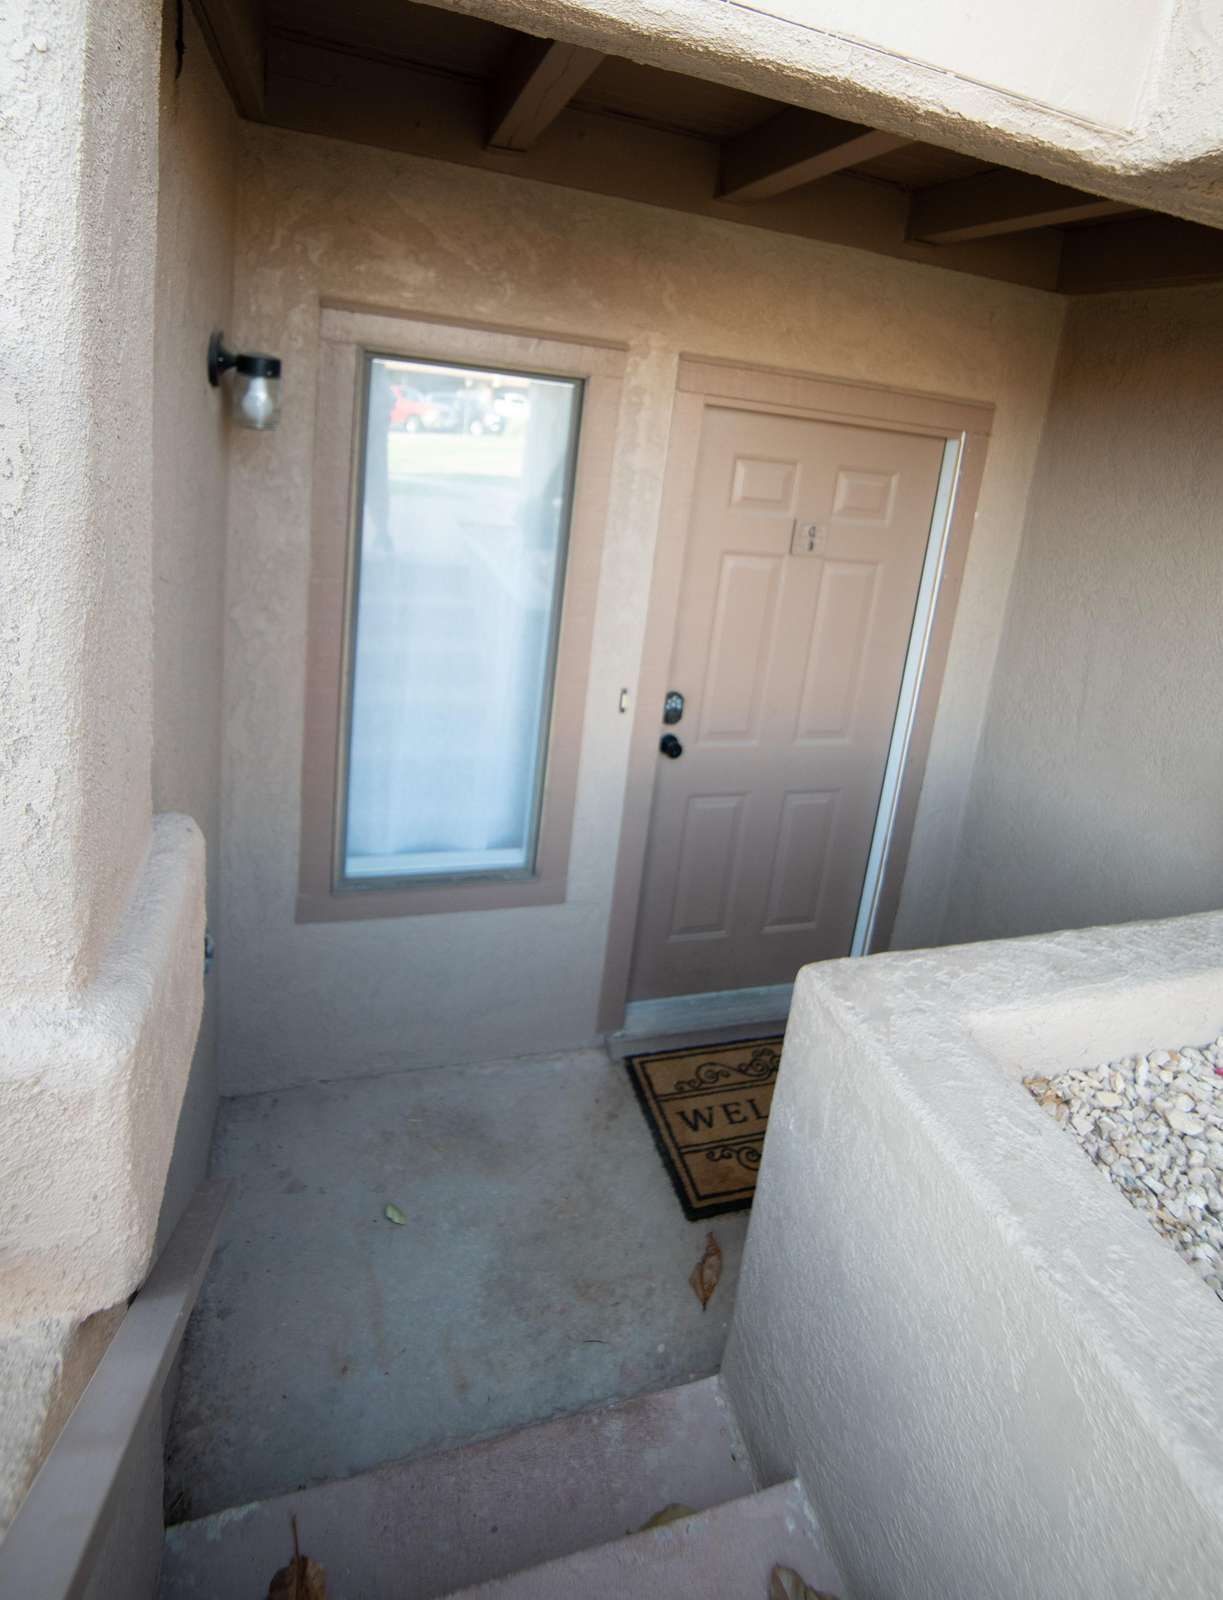 Entry to this condo is an EXTERIOR entrance